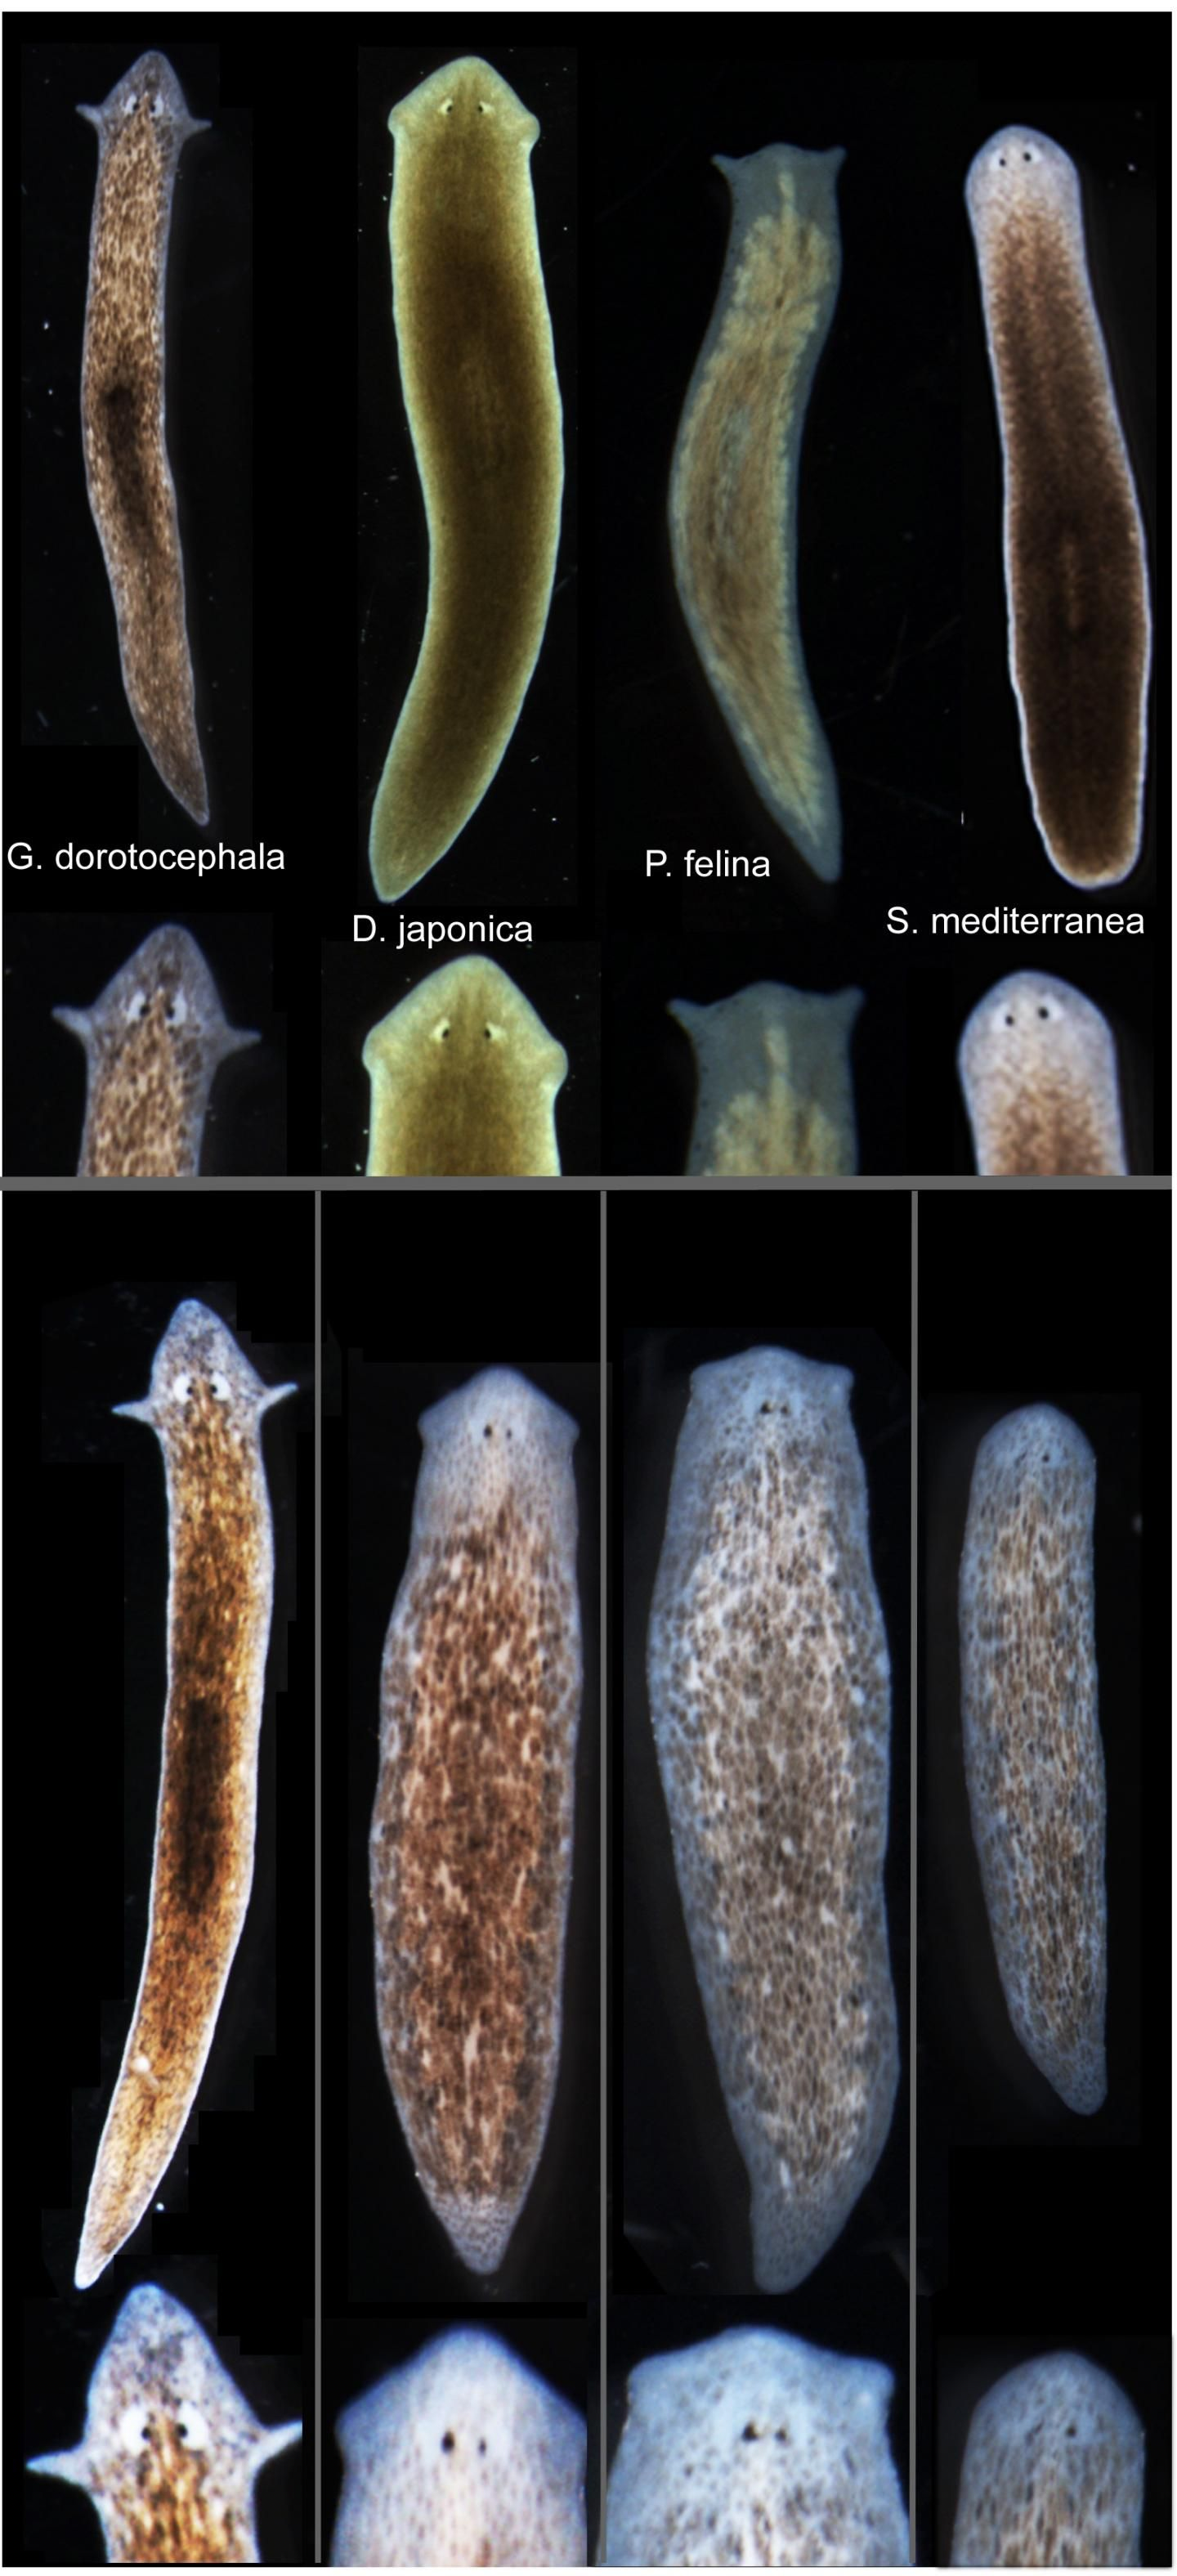 Tufts Biologists Induced One Species Of Flatworm G Dorotocephala